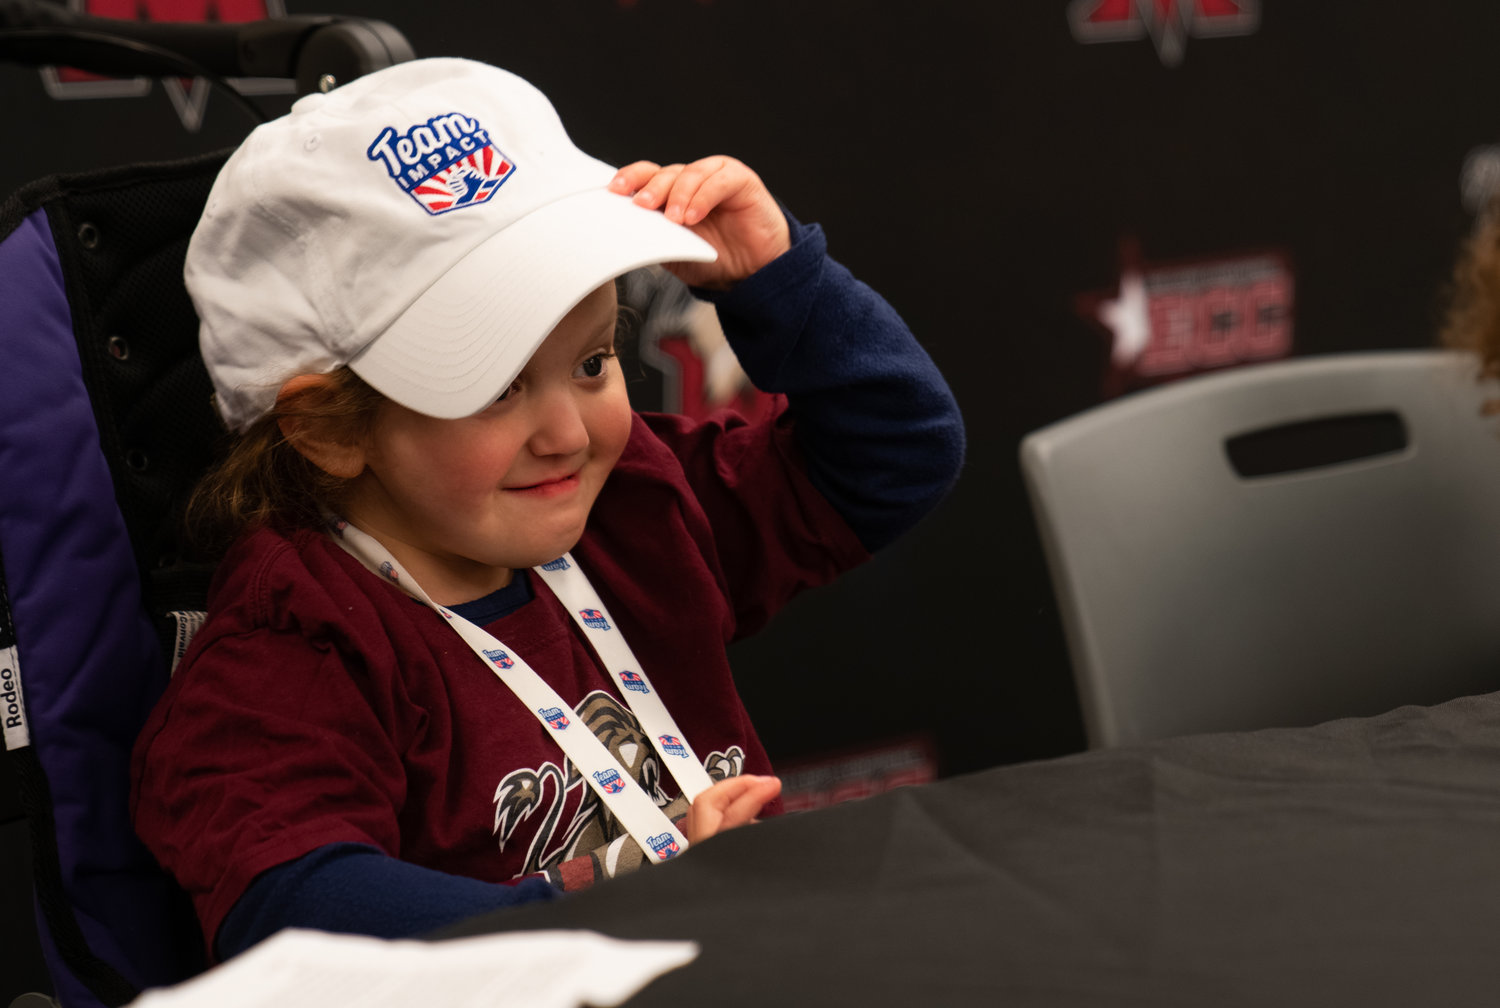 Five-year-old Penelope DiChiara signed on to Molloy's softball team.